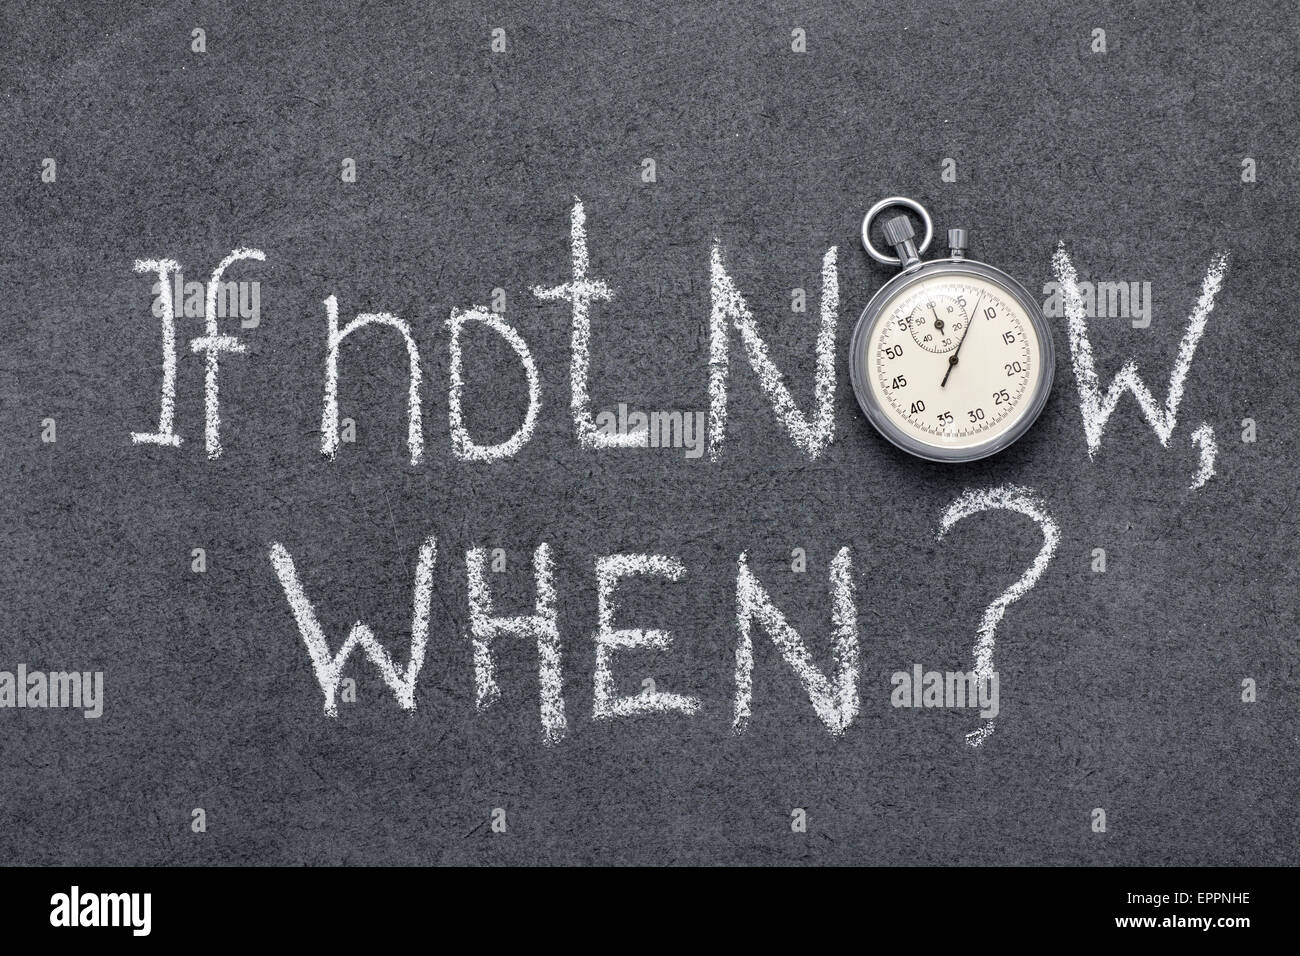 if not now, when question handwritten on chalkboard with vintage precise stopwatch used instead of O - Stock Image